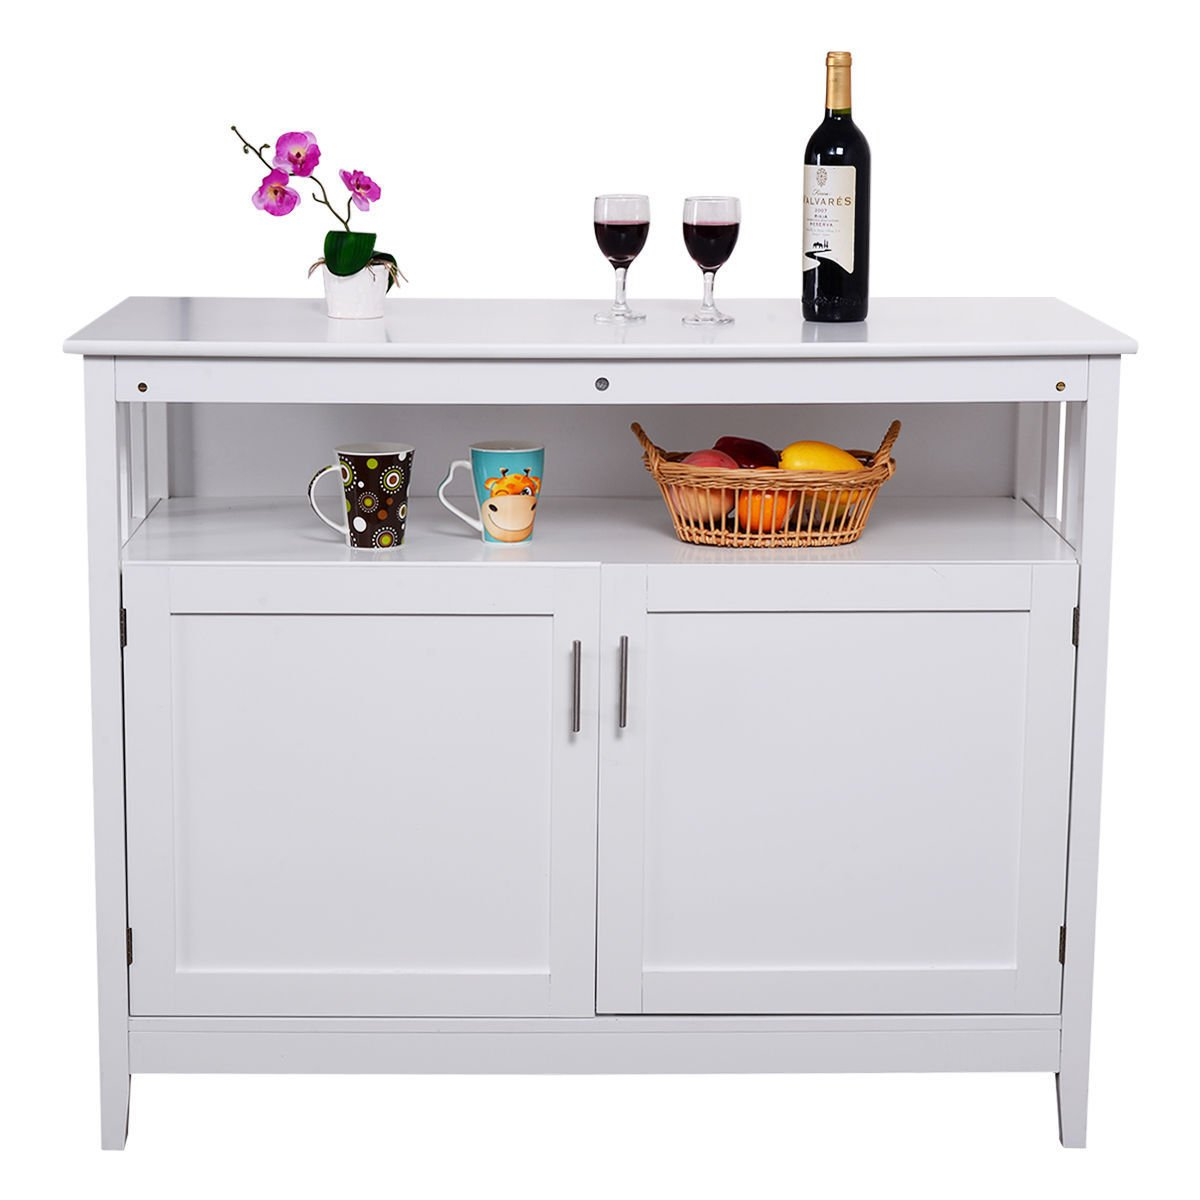 Modern Kitchen Storage Cabinet Buffet Server Table Sideboard Dining Wood by Heaven Tvcz